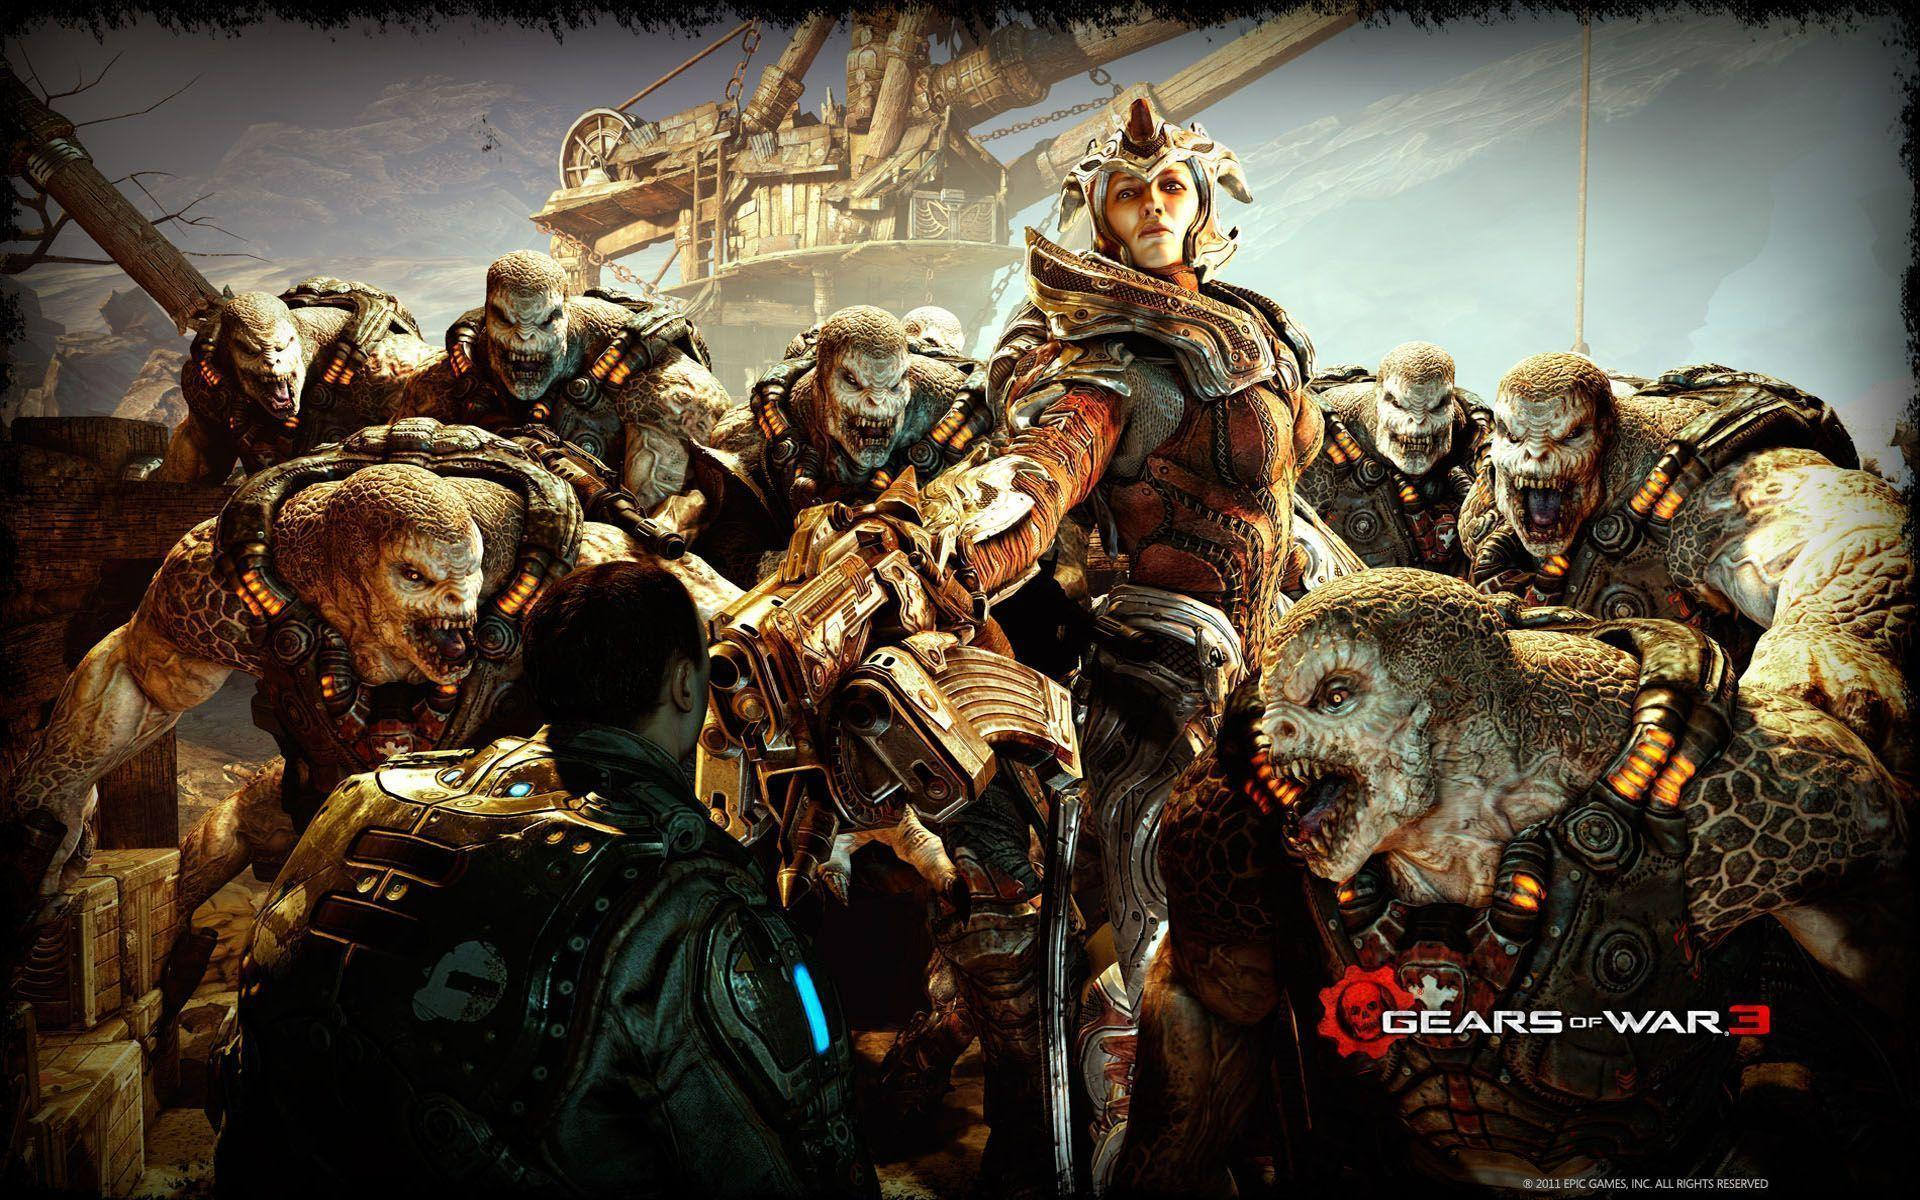 gears of war 3 wallpapers